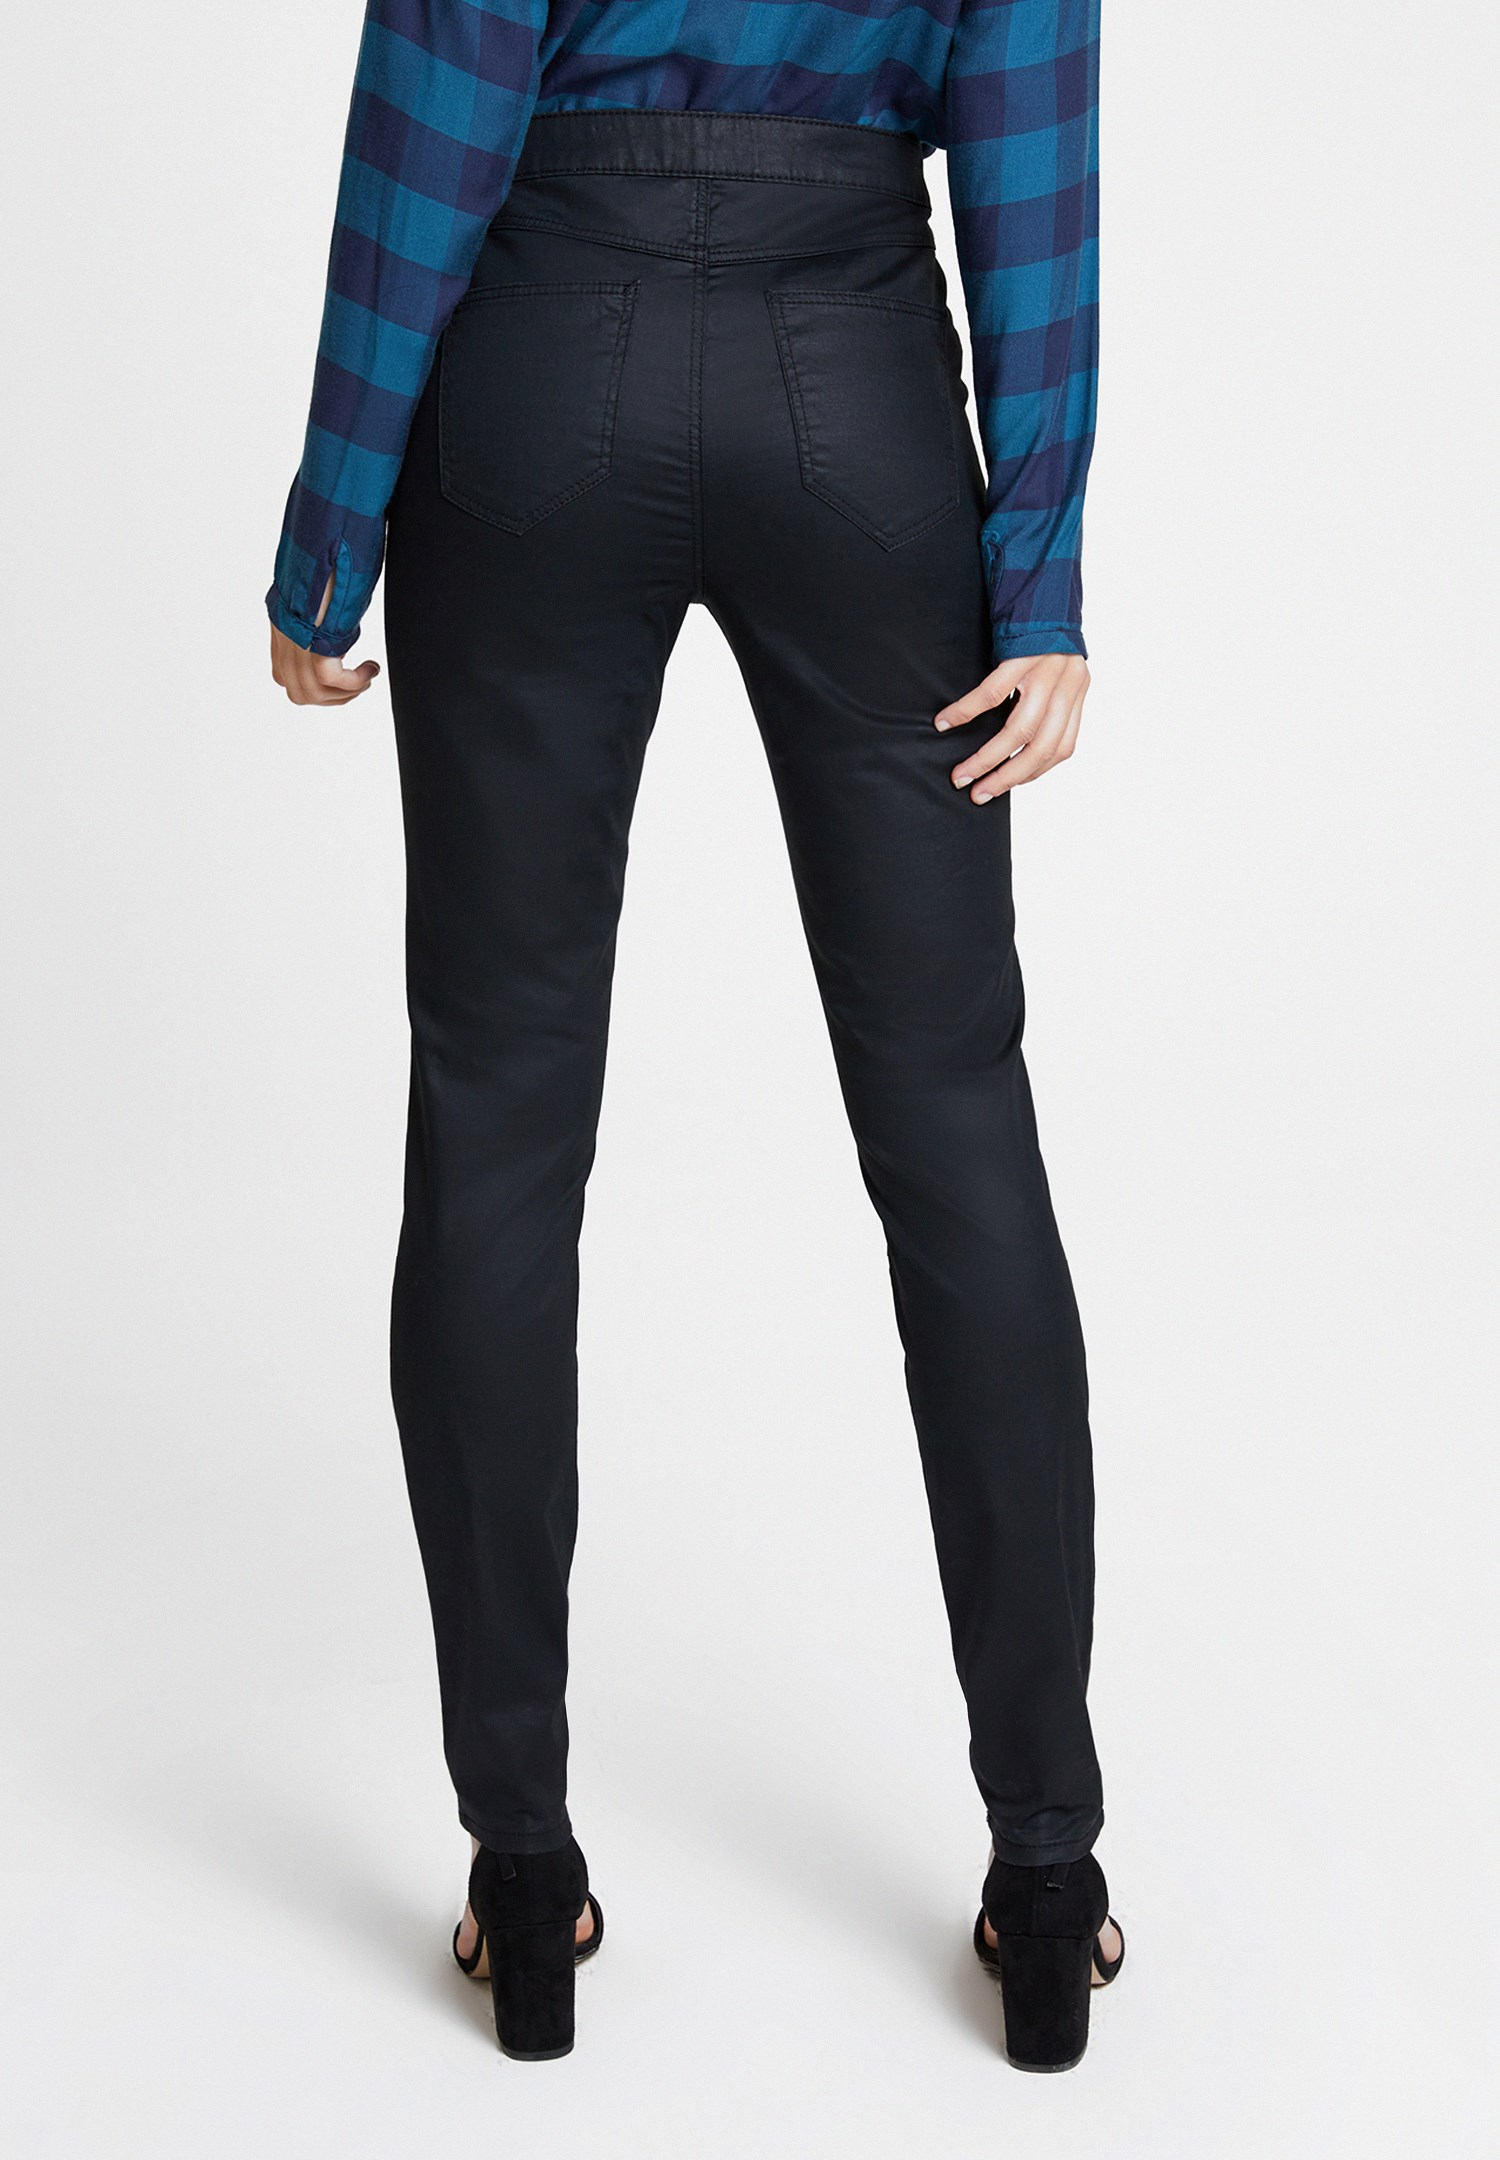 Women Black High Rise Trousers with Details